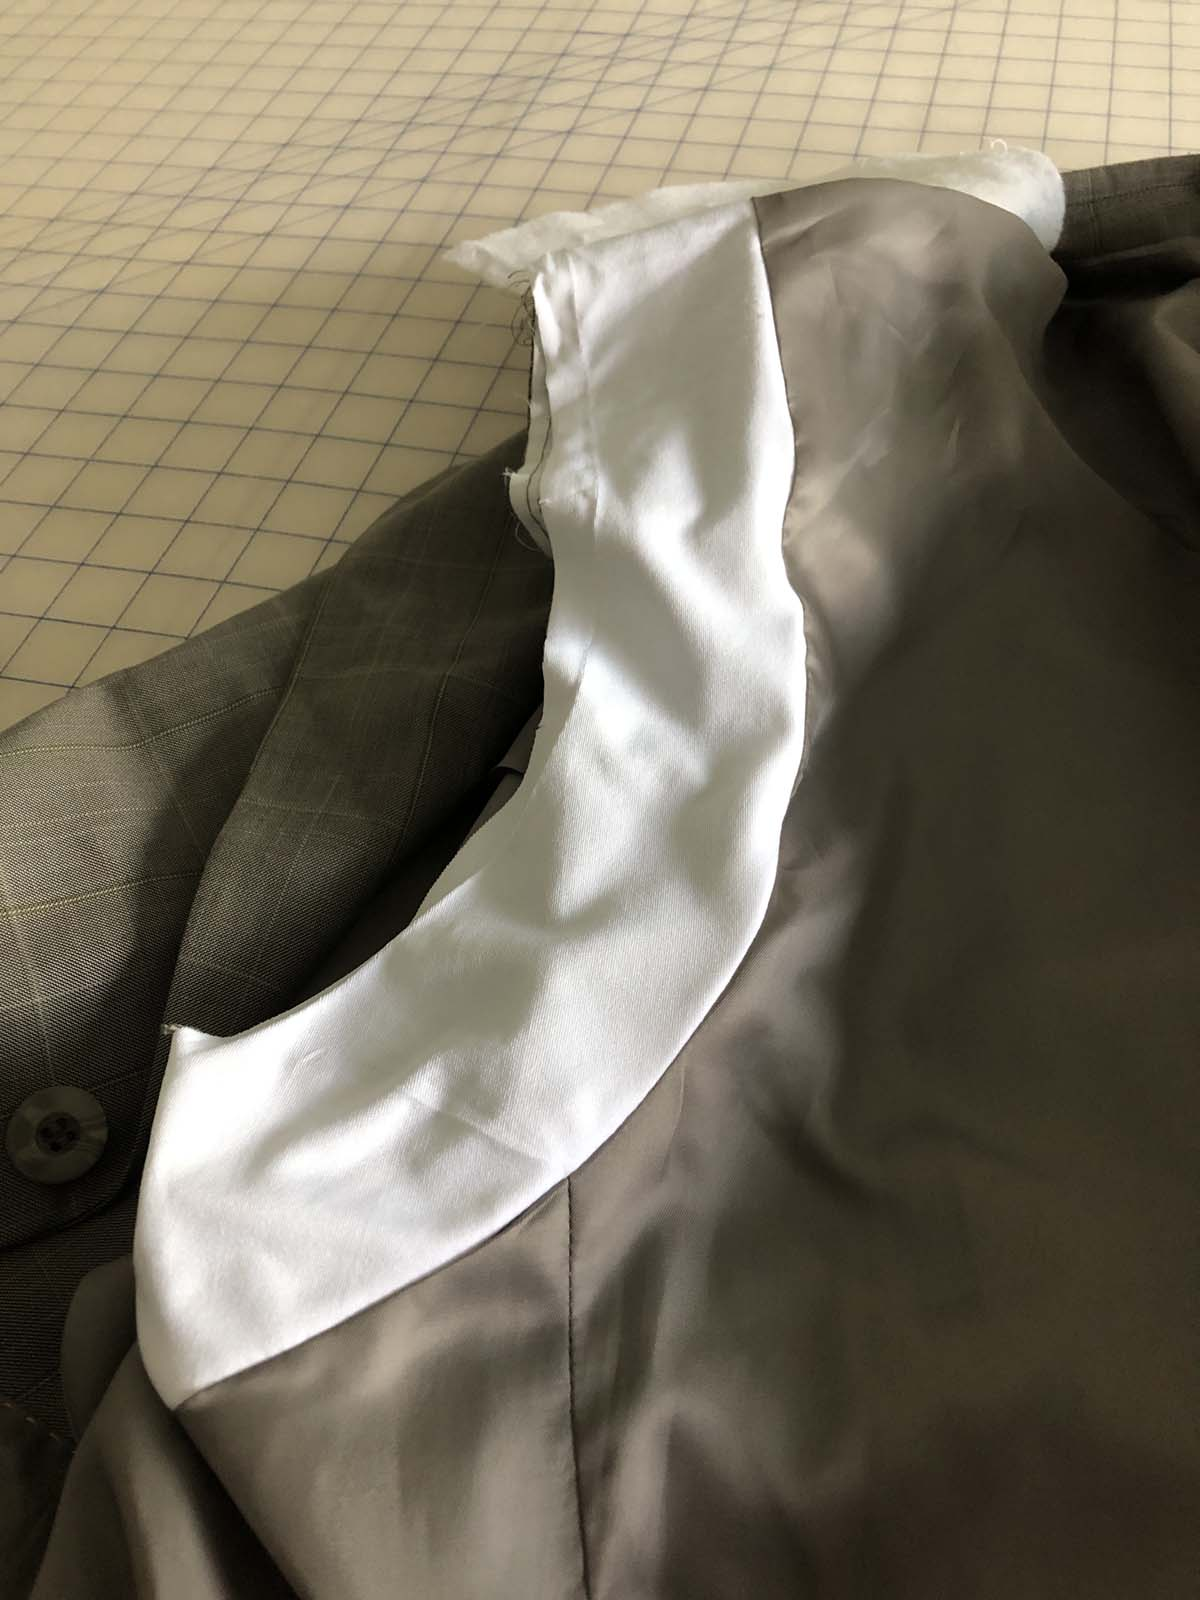 Interesting stretch panel on the men's suit jacket's back lining